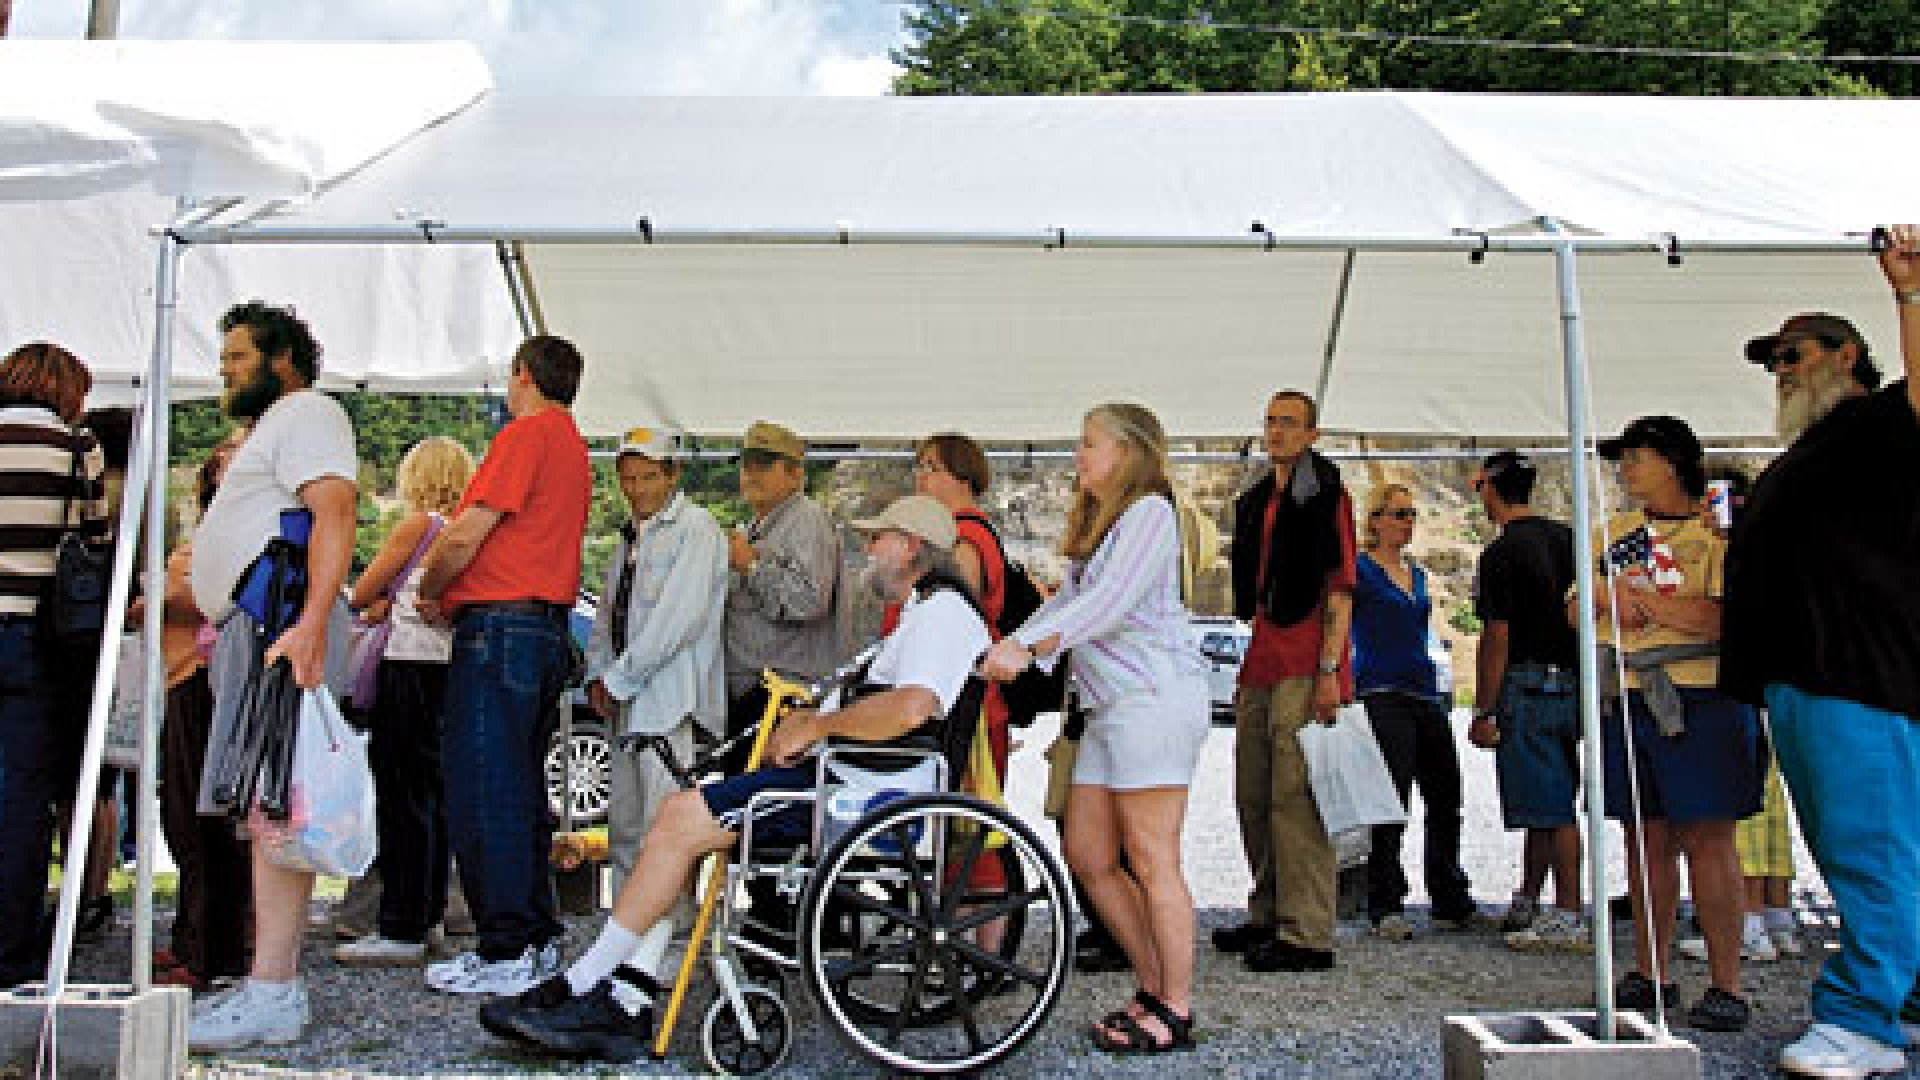 <strong>THERE MUST BE A BETTER WAY: </strong>Some 2,700 people lined up in July for free medical treatment at the Virginia-Kentucky Fairgrouds.